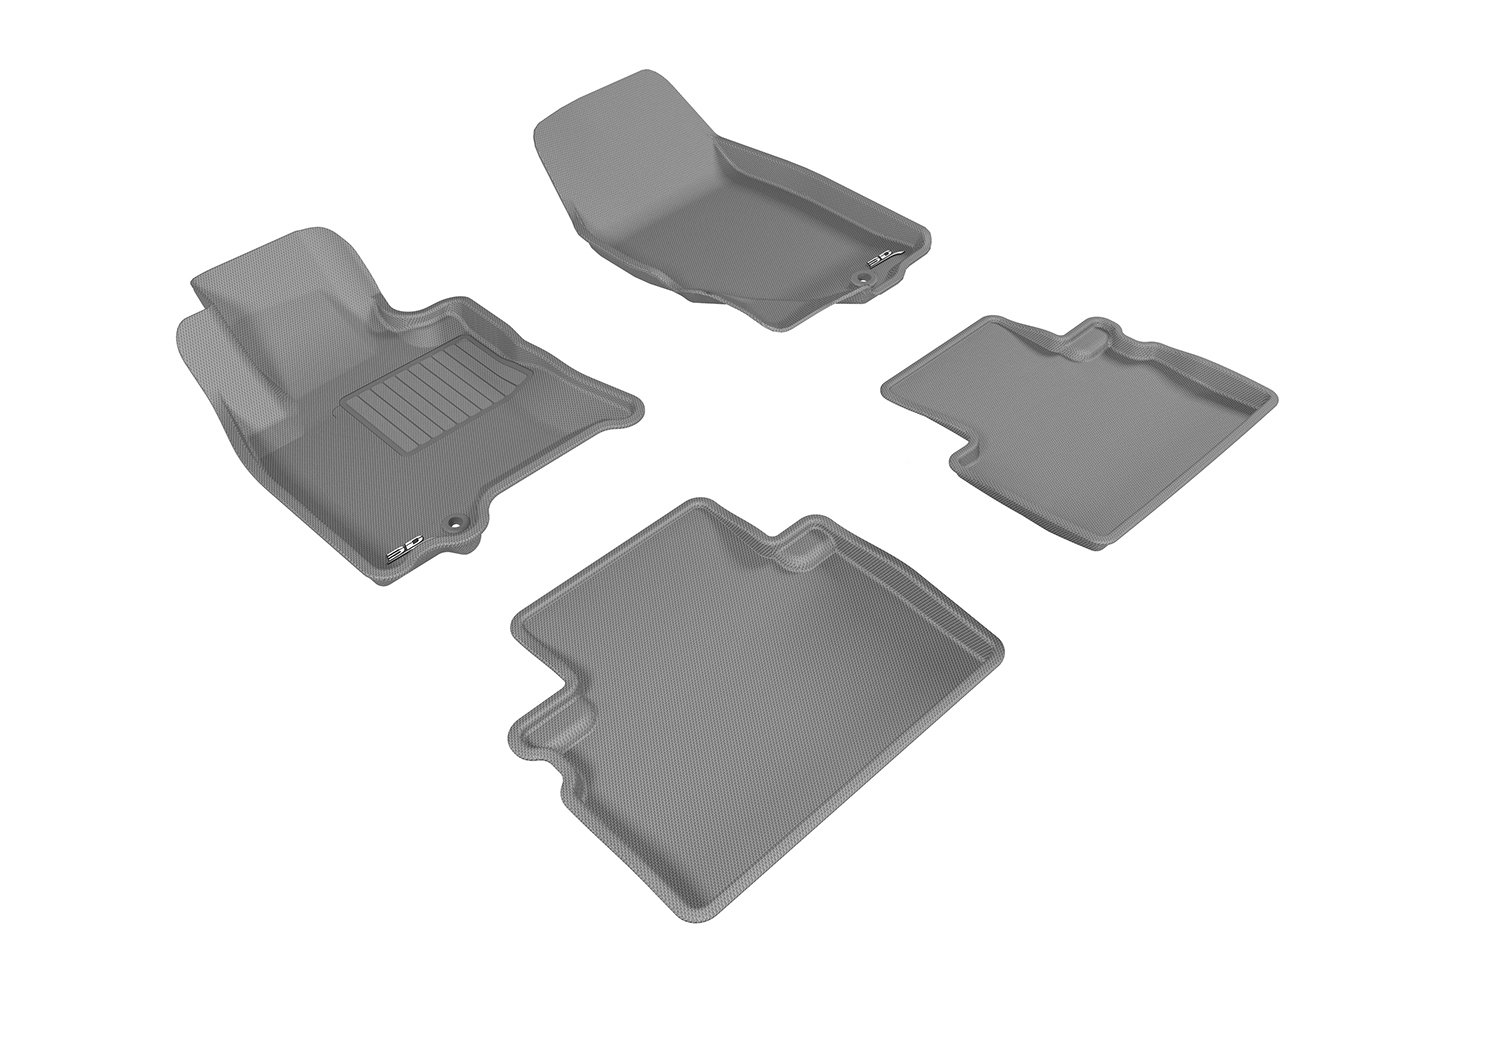 L1IN01901509 3D MAXpider Complete Set Custom Fit All-Weather Floor Mat for Select Infiniti QX50 Models Black Kagu Rubber